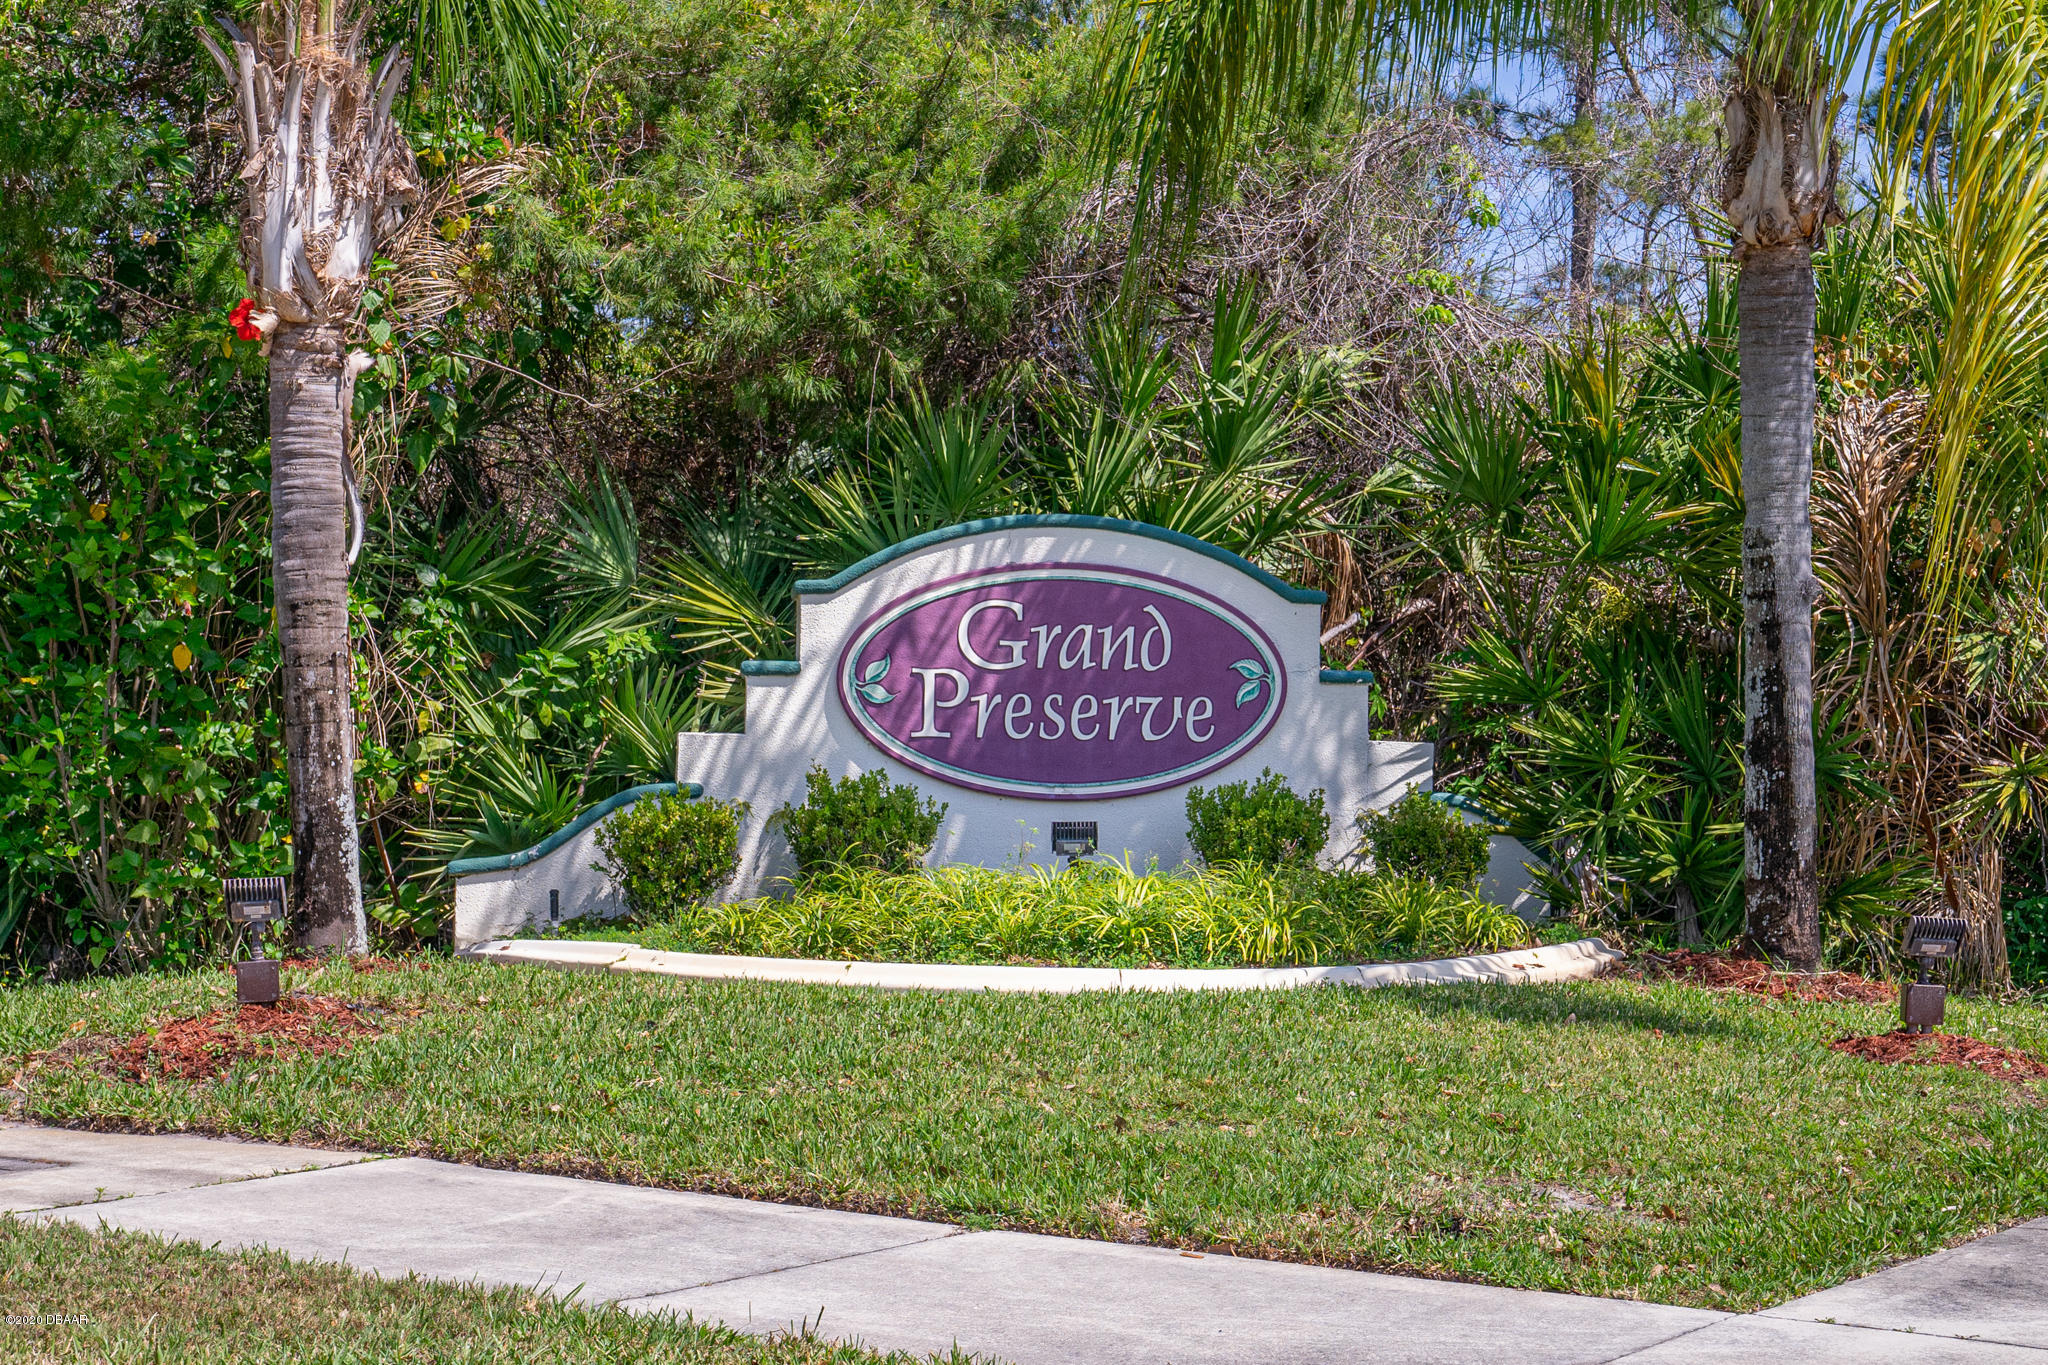 336 Grand Preserve Daytona Beach - 30